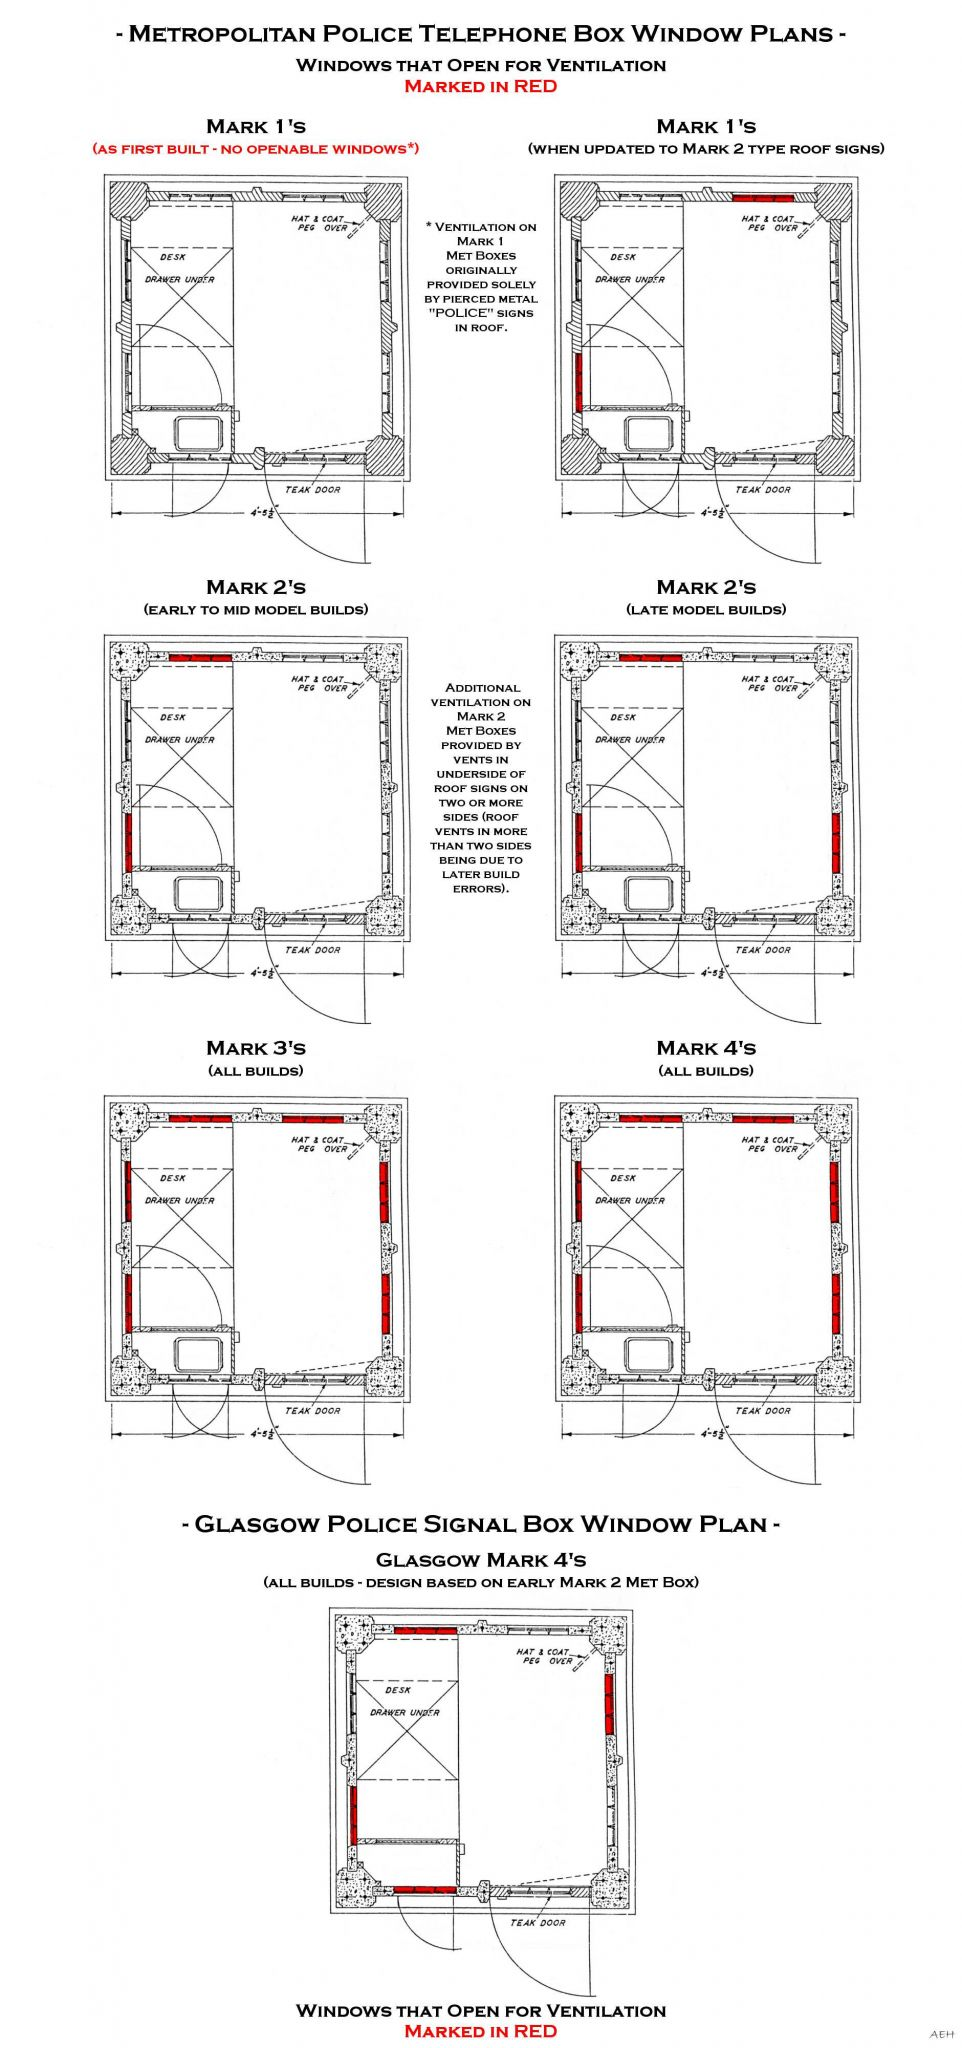 Met_&_Glasgow_Window_Ventilation_Plans-Full_Size_Chart-(compressed)-AutoReduced.jpg